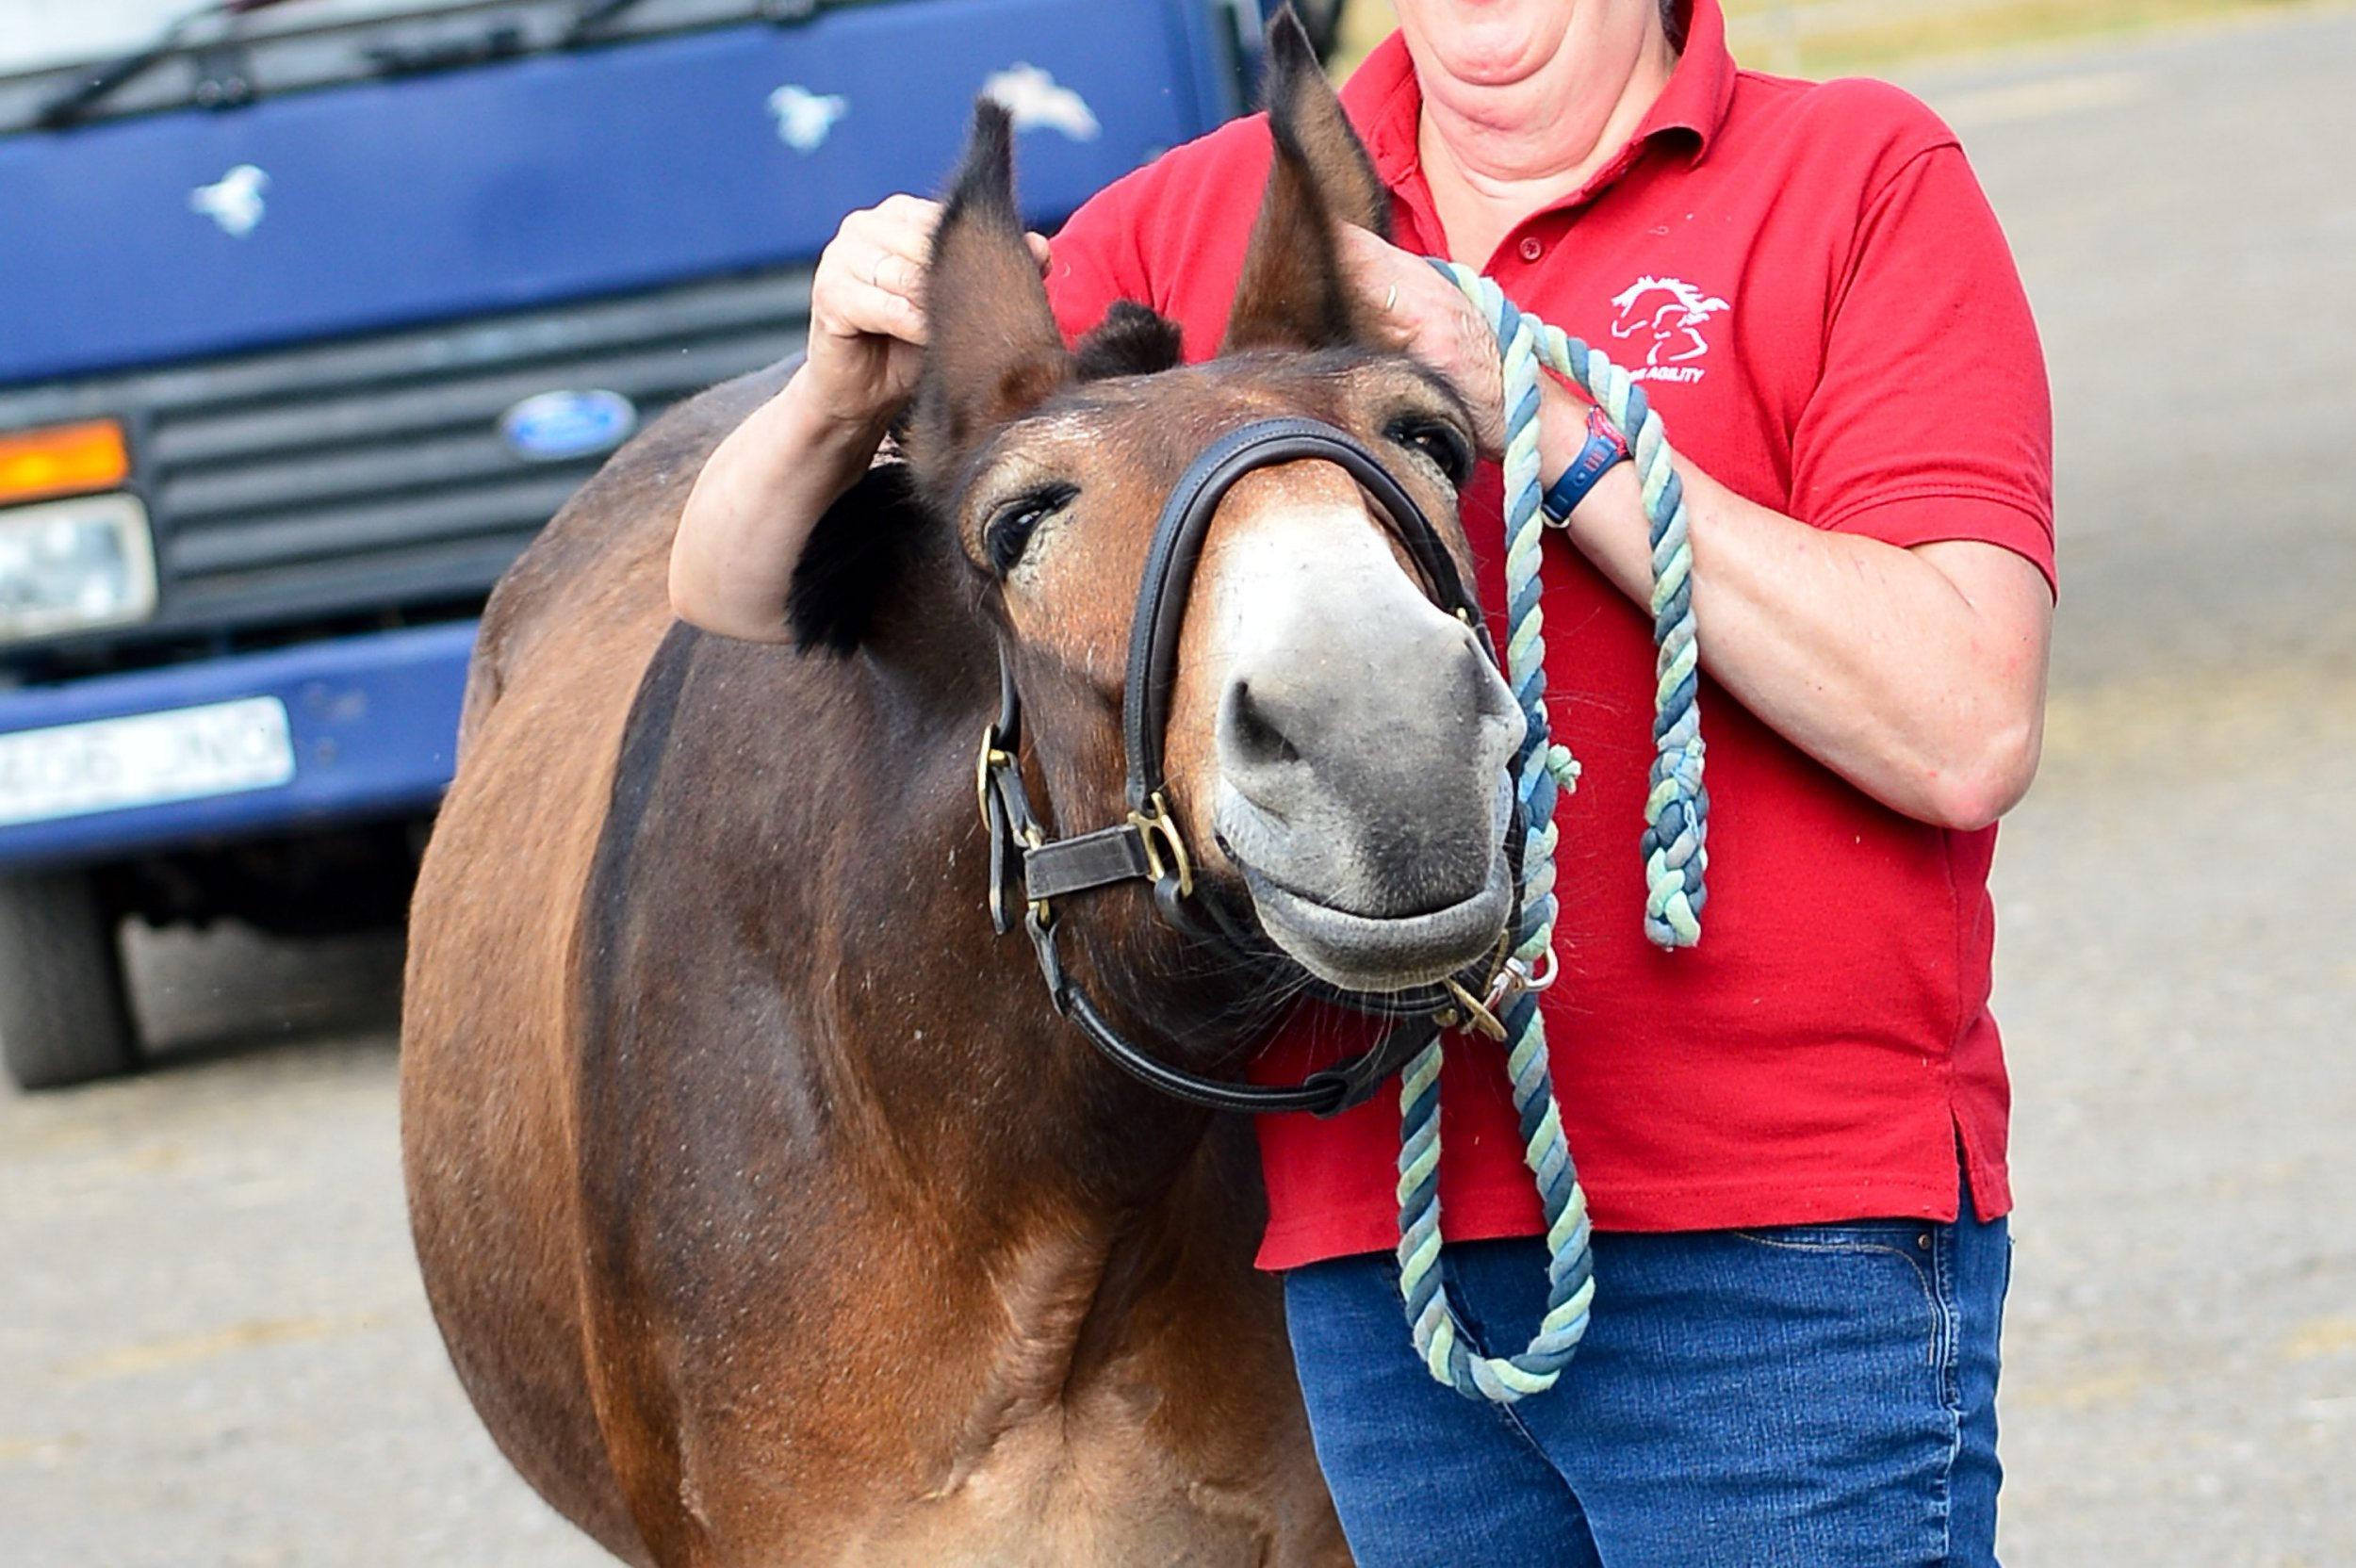 Christie McLean, 30, from Stroud in Gloucestershire, has just competed at The Summerhouse equestrian centre in the intro dressage test of a British dressage team quest, whilst riding Wallace, a rescue mule from Sidmouth donkey sanctuary. Walace is the first ever mule to compete under British dressage and he won with a score of 67.6%. See SWNS story SWMULE